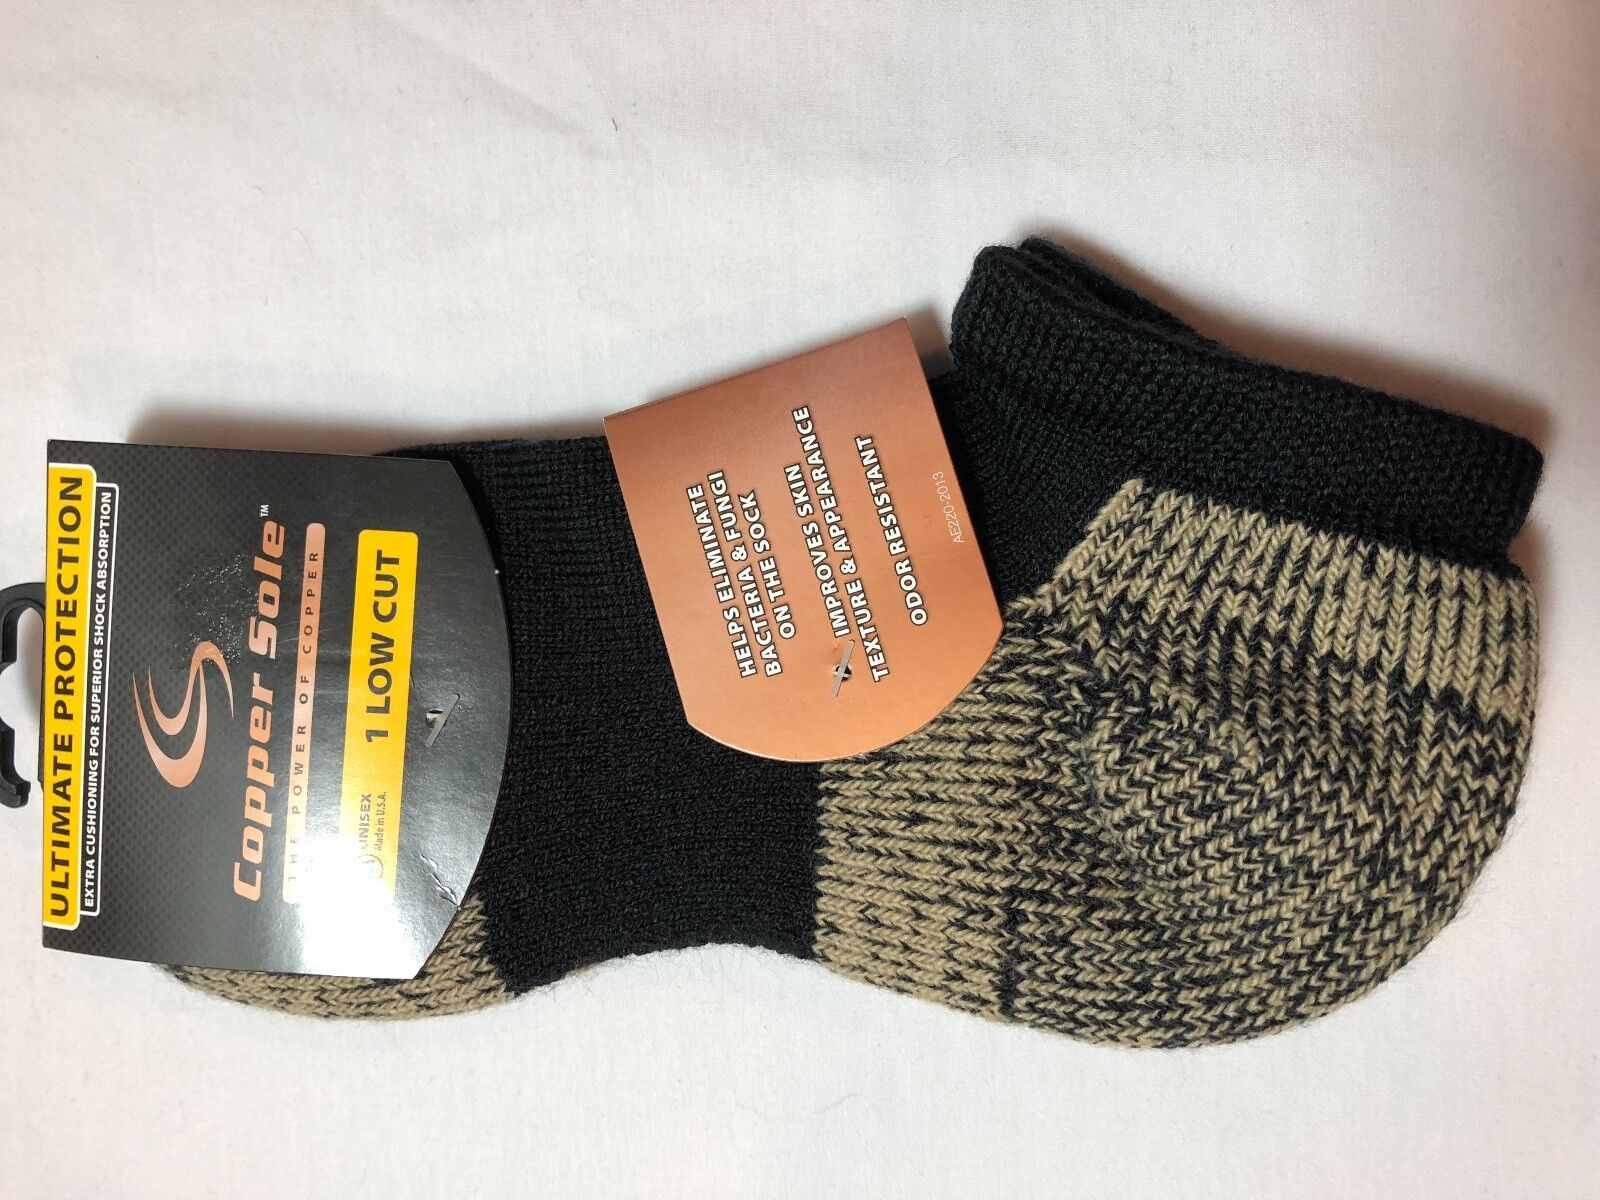 ONE PAIR COPPER SOLE  LO CUT ULTIMATE PROTECTION  UNISE SOCKS BLACK SIZE M SC855 Clothing, Shoes & Accessories